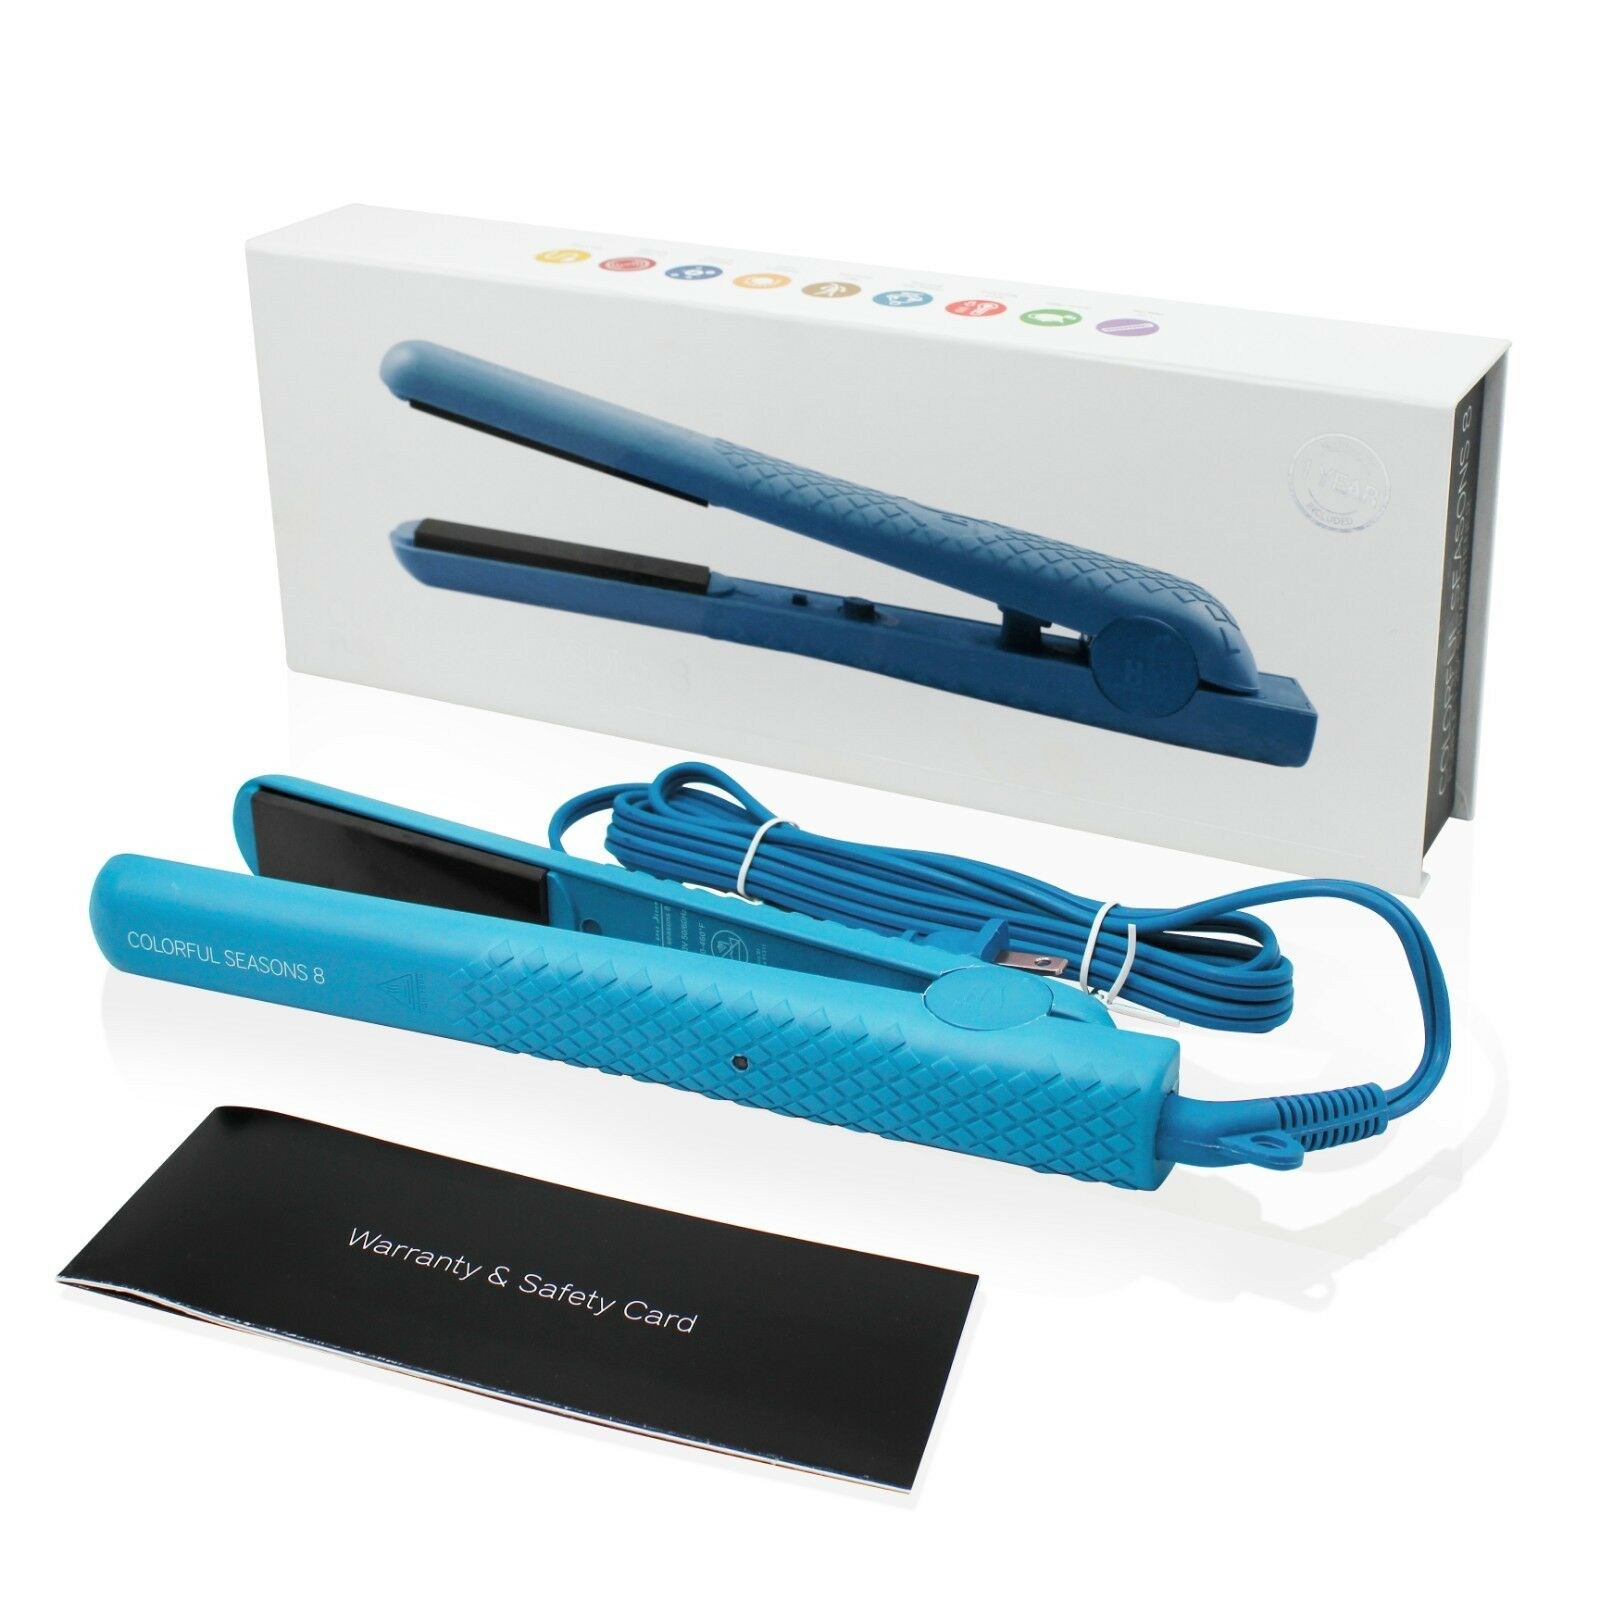 Herstyler Colorful Seasons Ceramic Flat Iron, Dual Voltage,